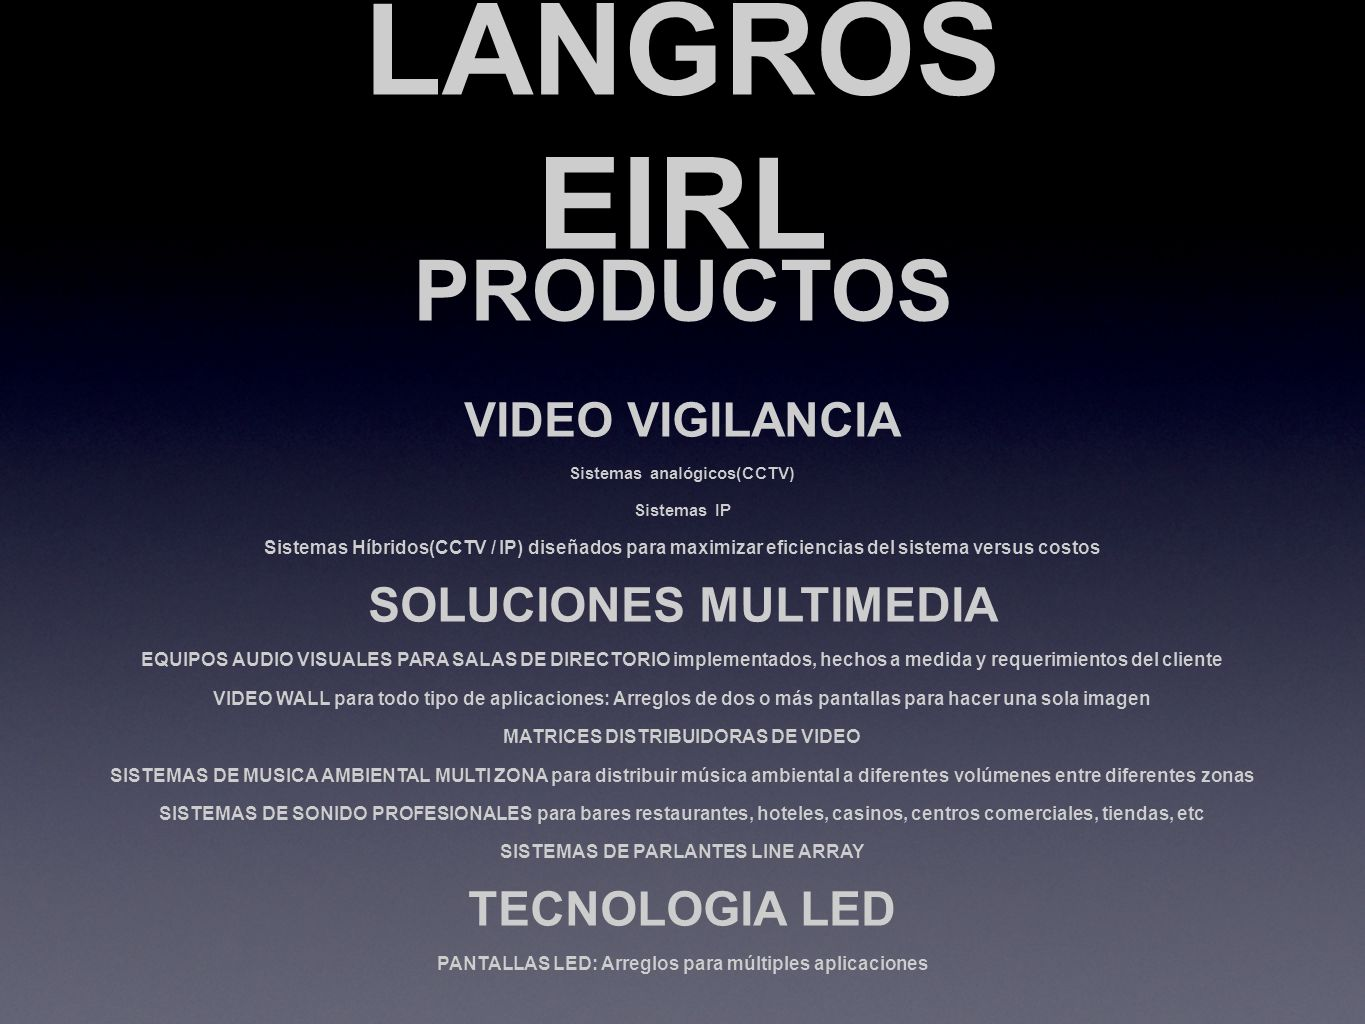 LANGROS EIRL PRODUCTOS VIDEO VIGILANCIA SOLUCIONES MULTIMEDIA